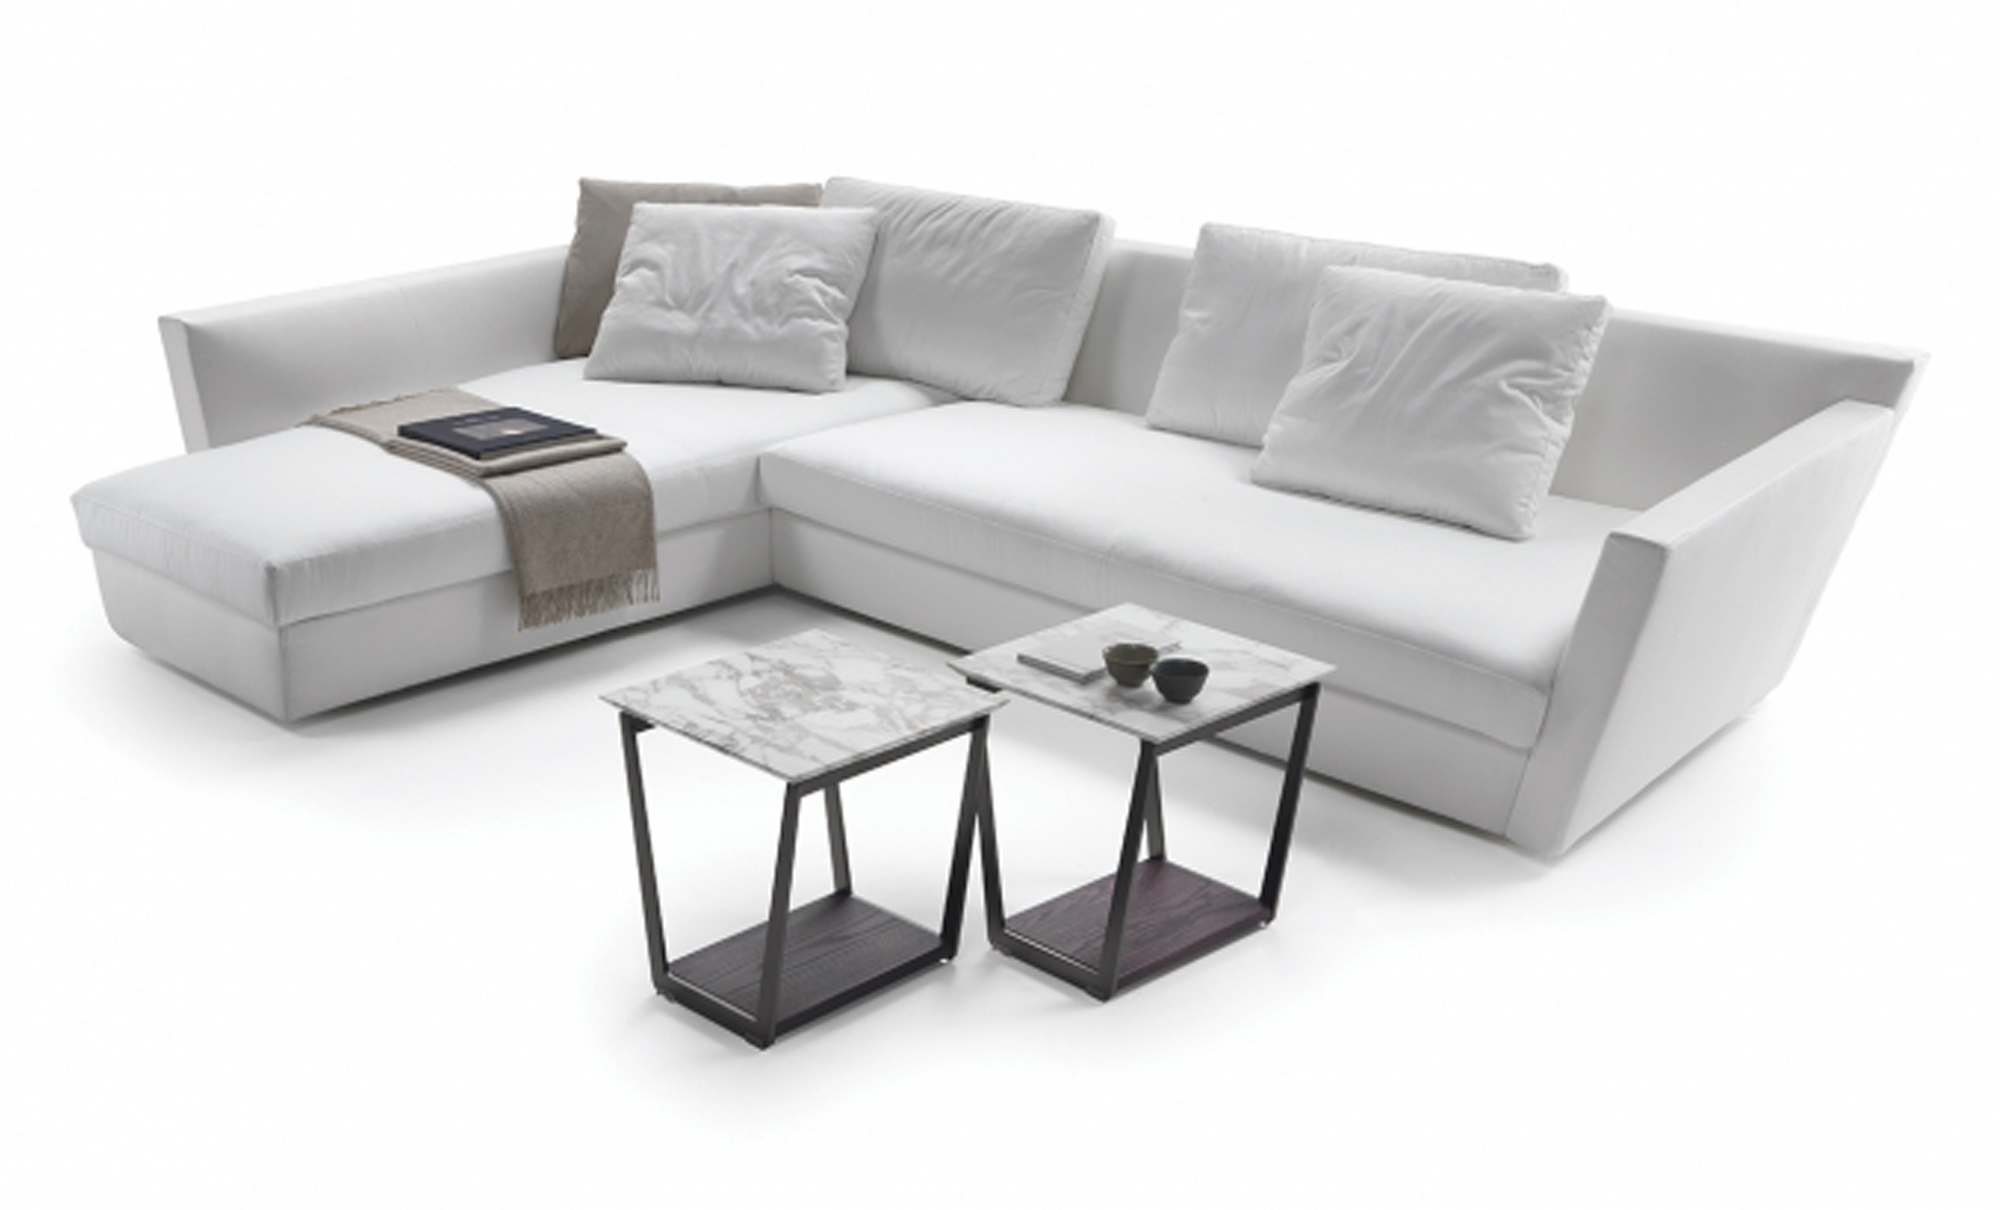 Sofa furniture melbourne Home furniture melbourne australia